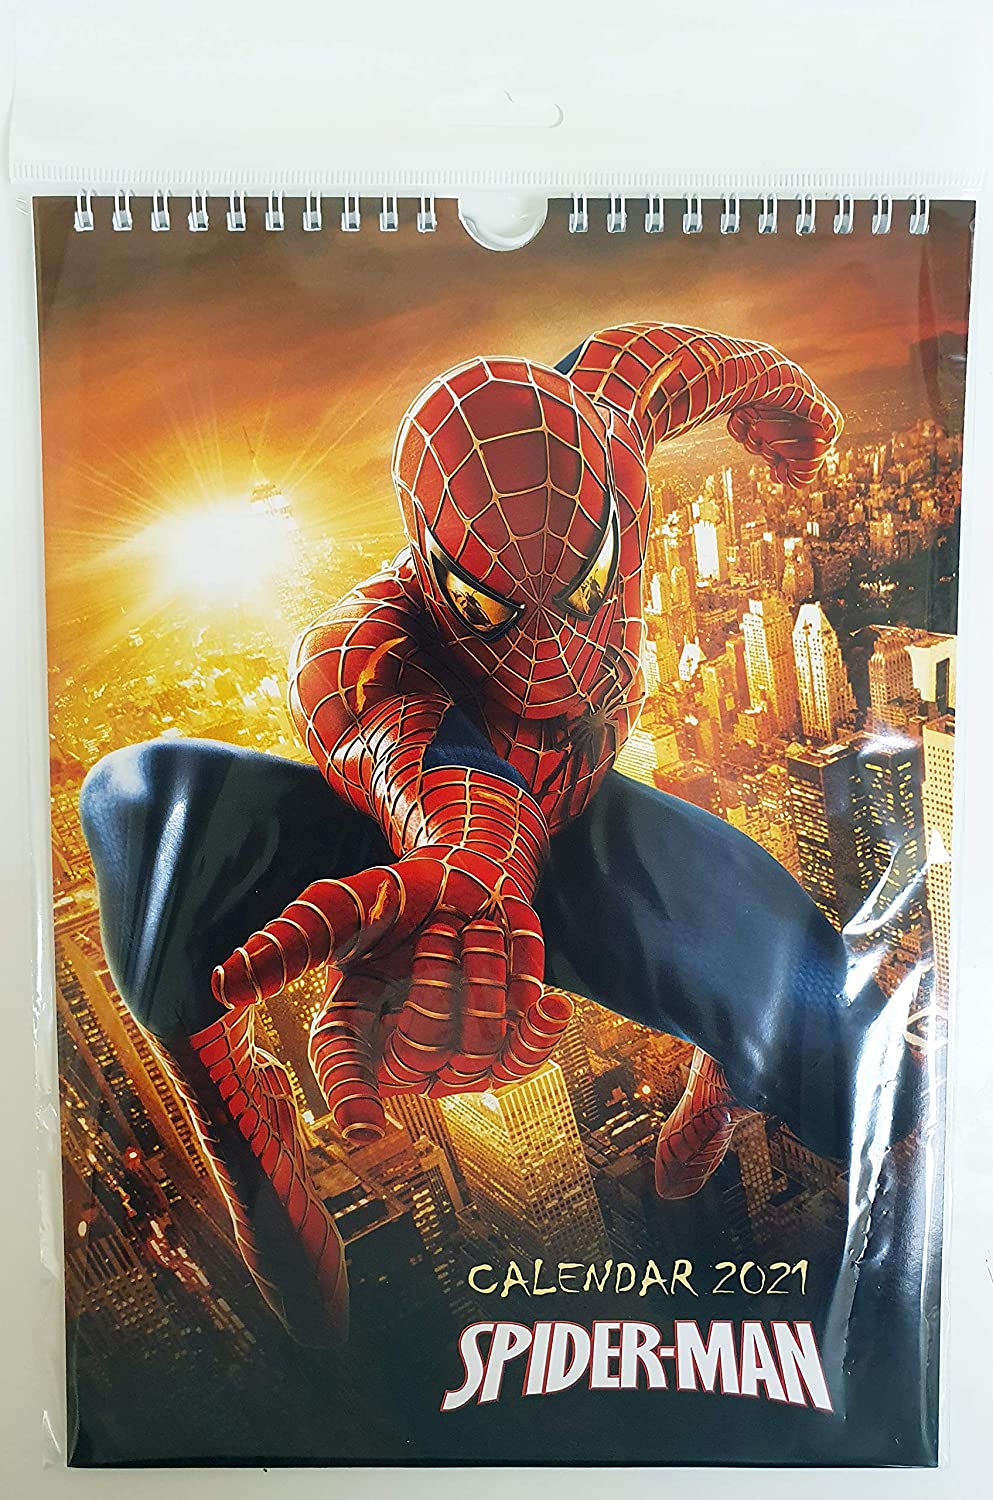 Amazon.: Spiderman Wall Calendar New 2021 A4 : Office Products